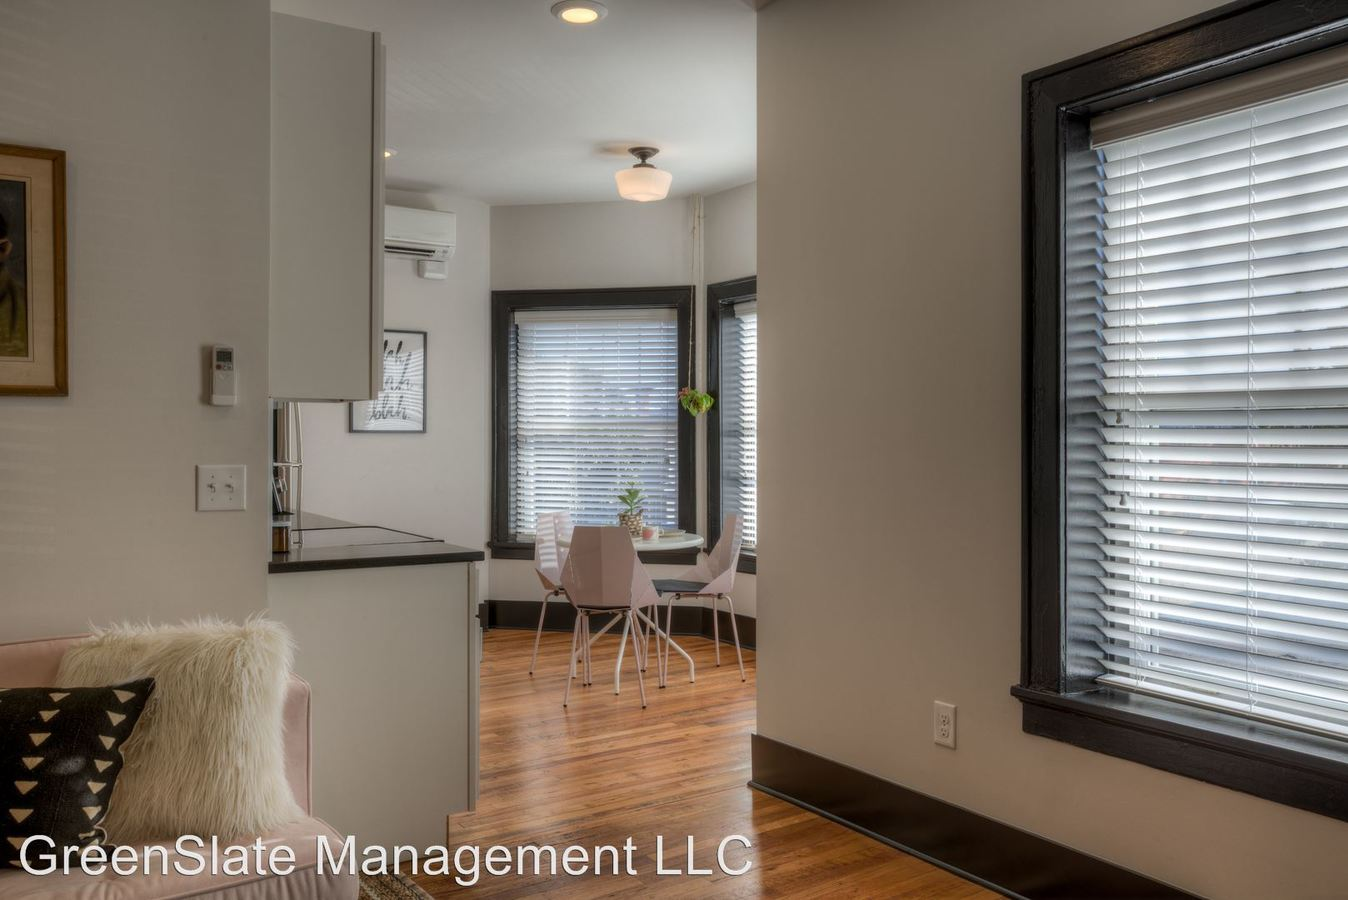 2 Bedrooms 2 Bathrooms Apartment for rent at 3804 Farnam St in Omaha, NE